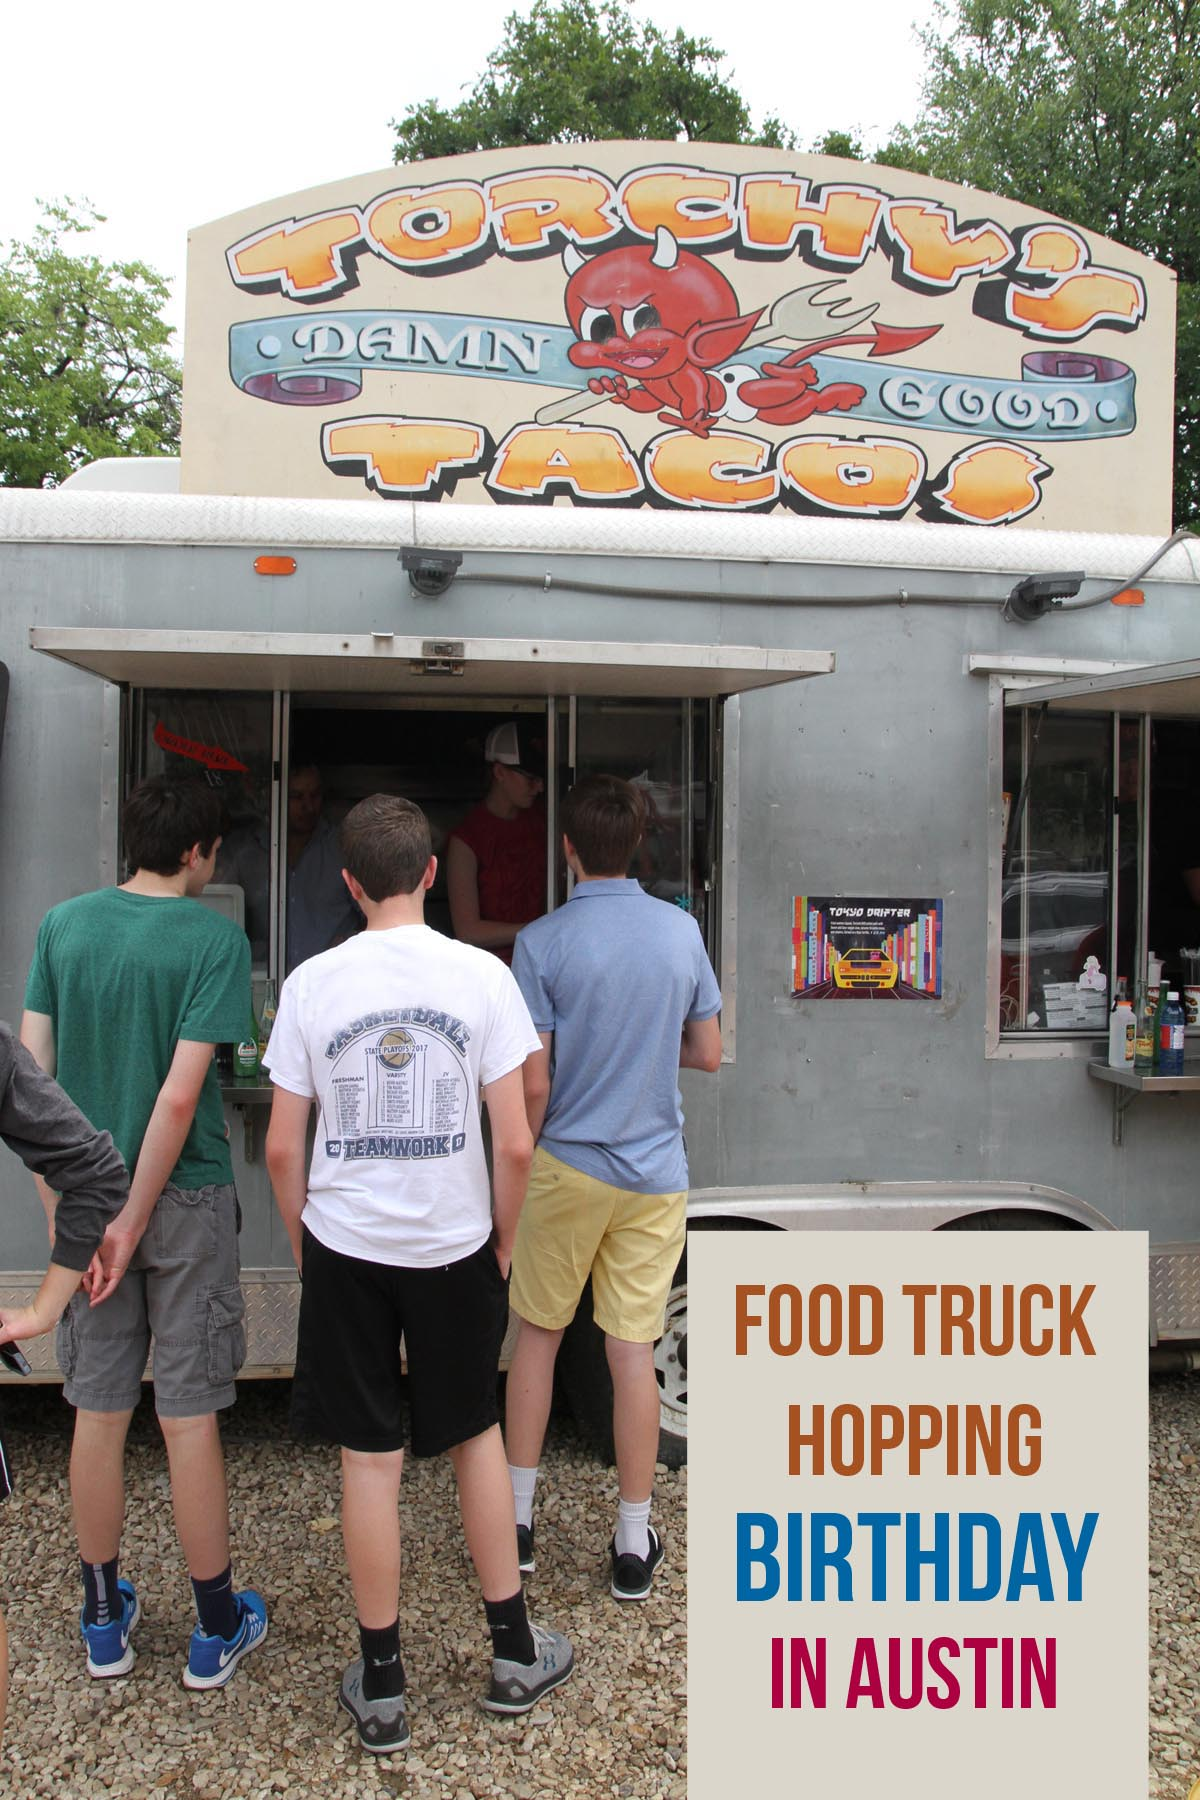 Looking for a fun, and easy, birthday for your teenager? Just feed them! Venture to any of Austin's best food trailers and maybe catch a mural or two, but be prepared to roll home.